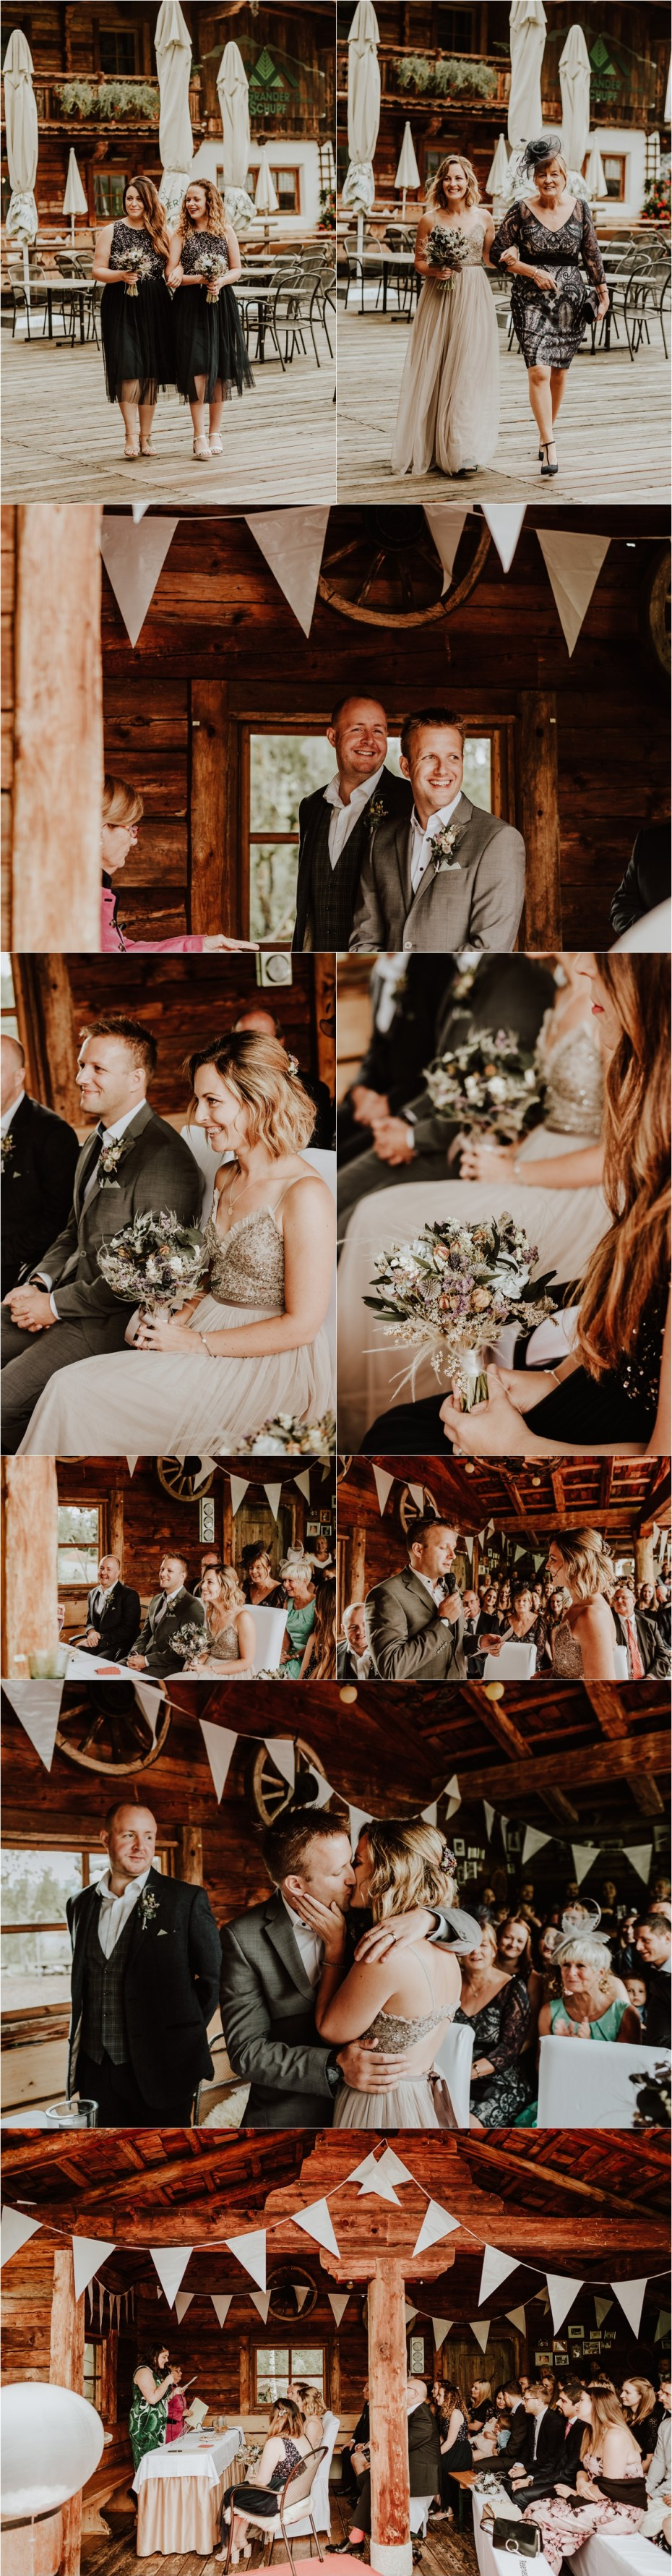 A wedding ceremony in the Austrian Alps at Berg Gasthaus Grander Schupf by Austria wedding photographer Wild Connections Photography